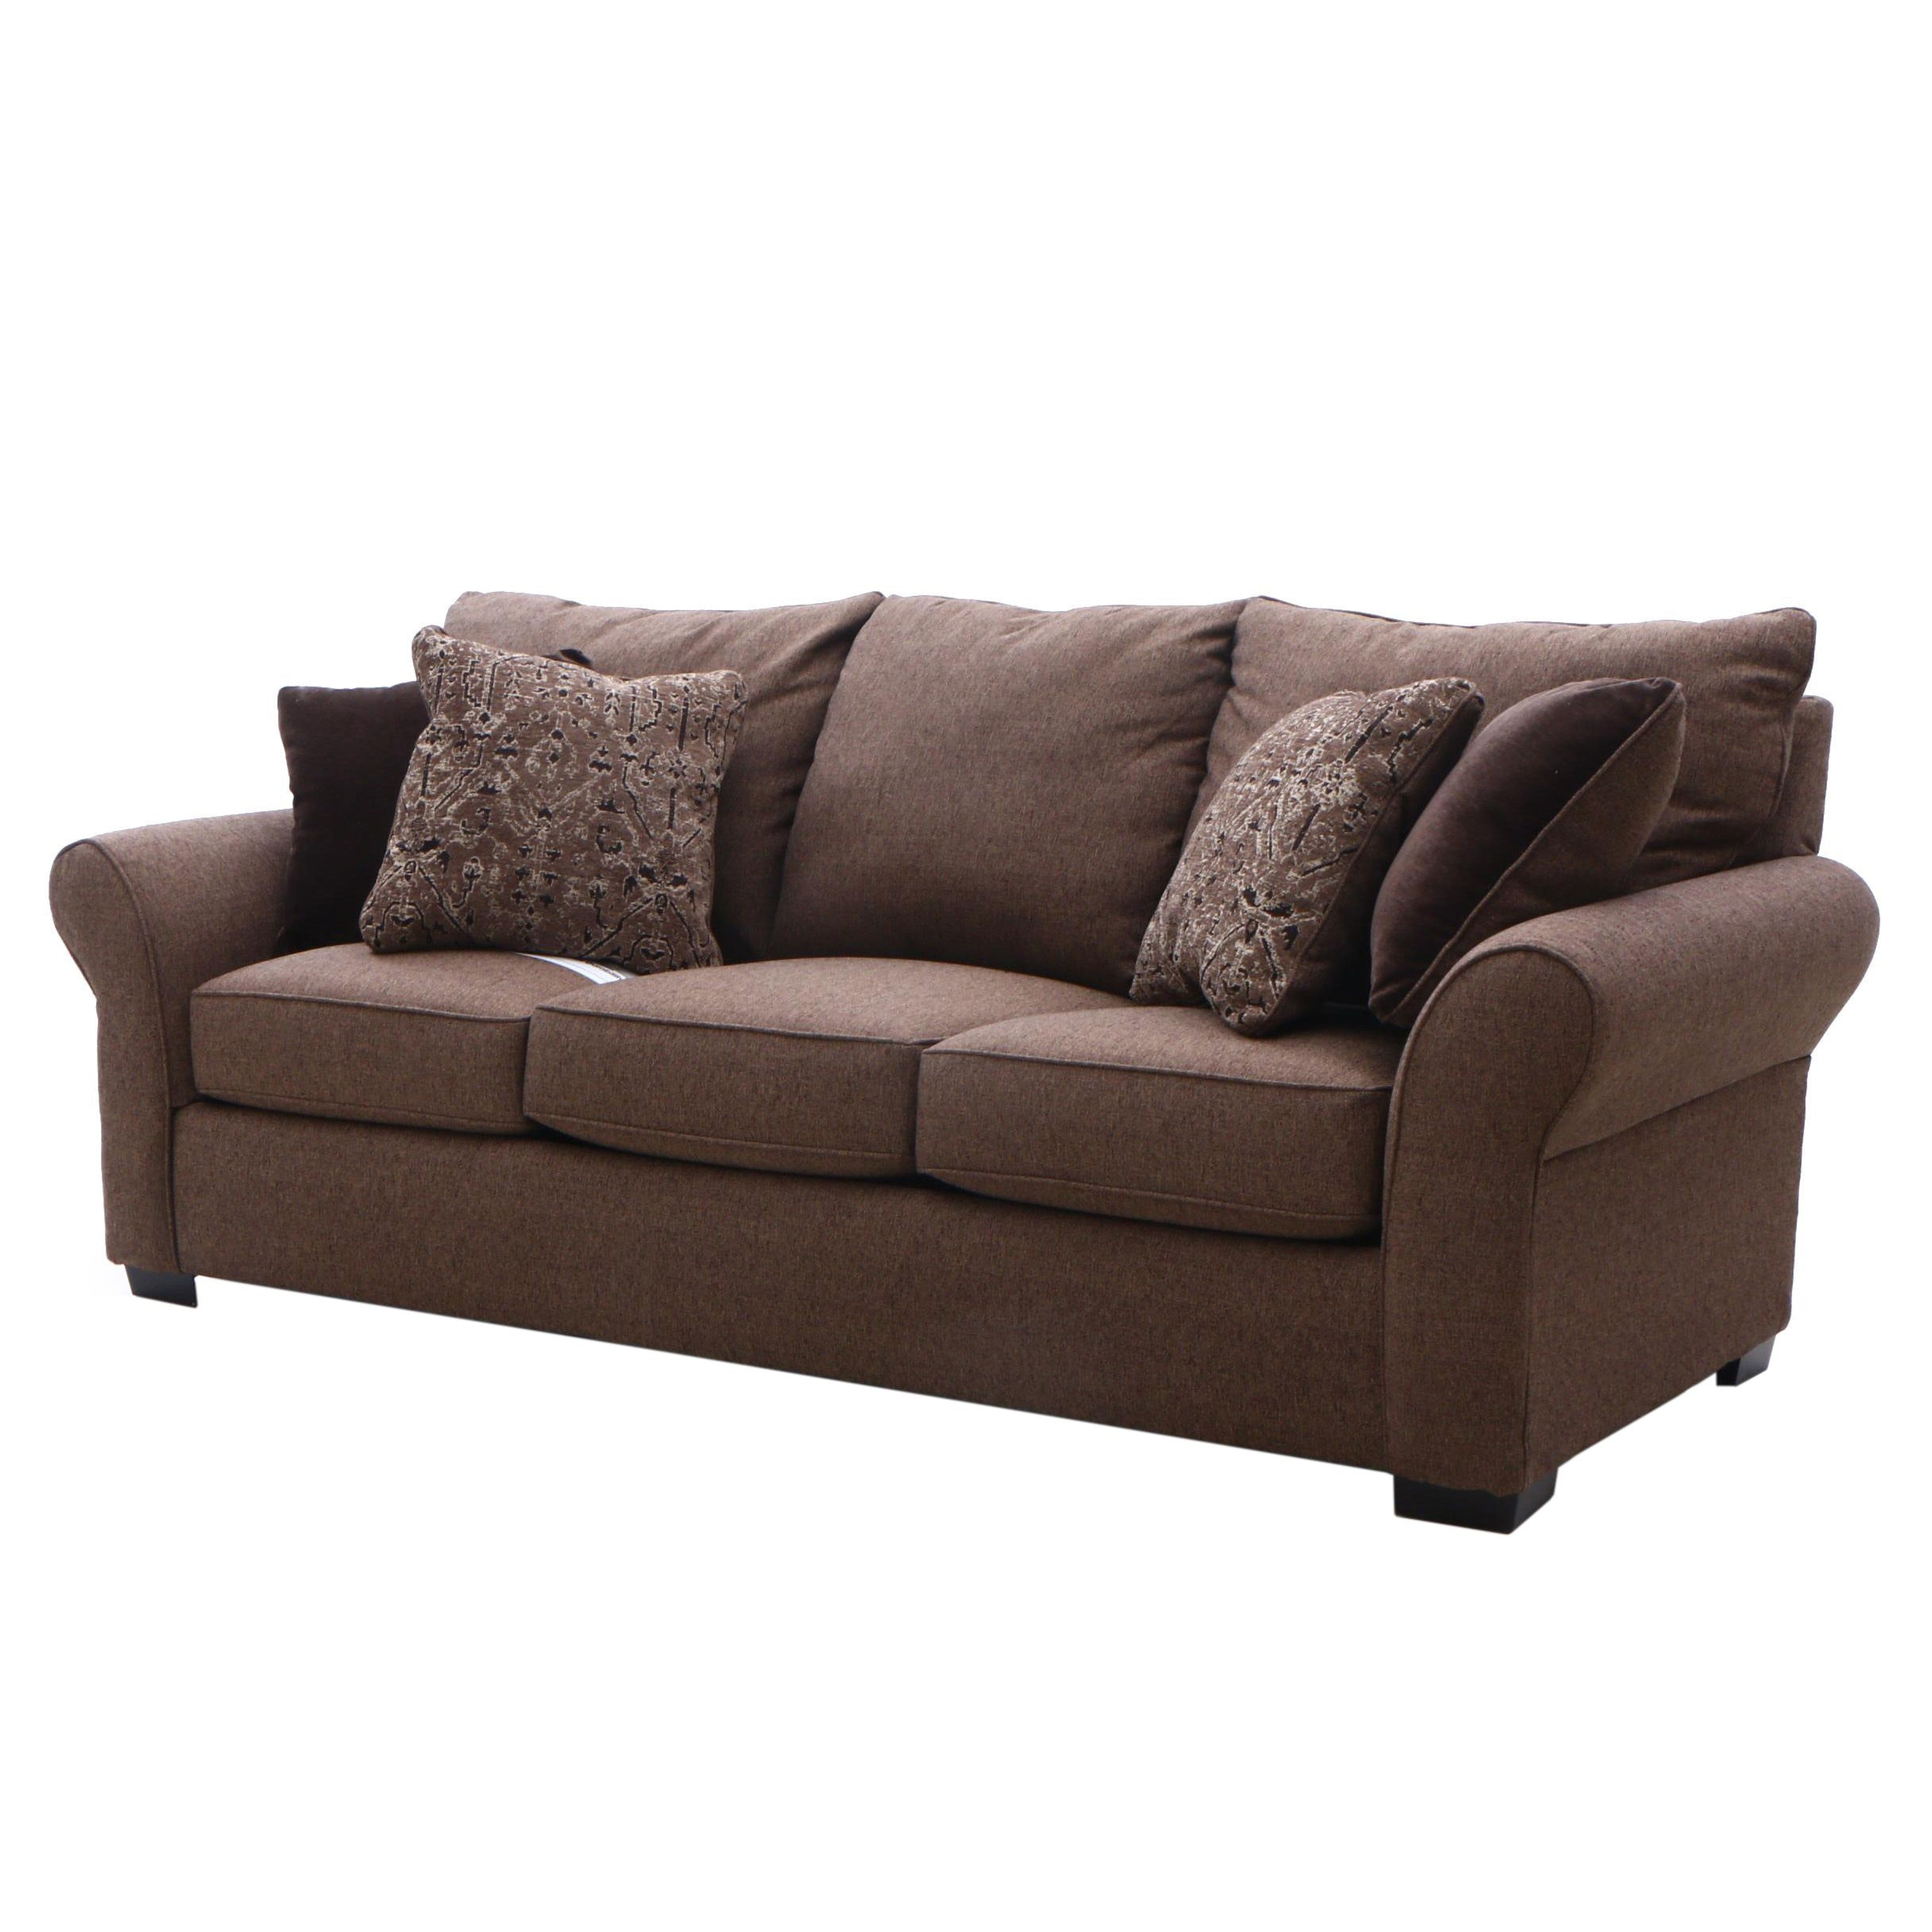 Contemporary Upholstered Sofa with Accent Pillow by Jackson Furniture